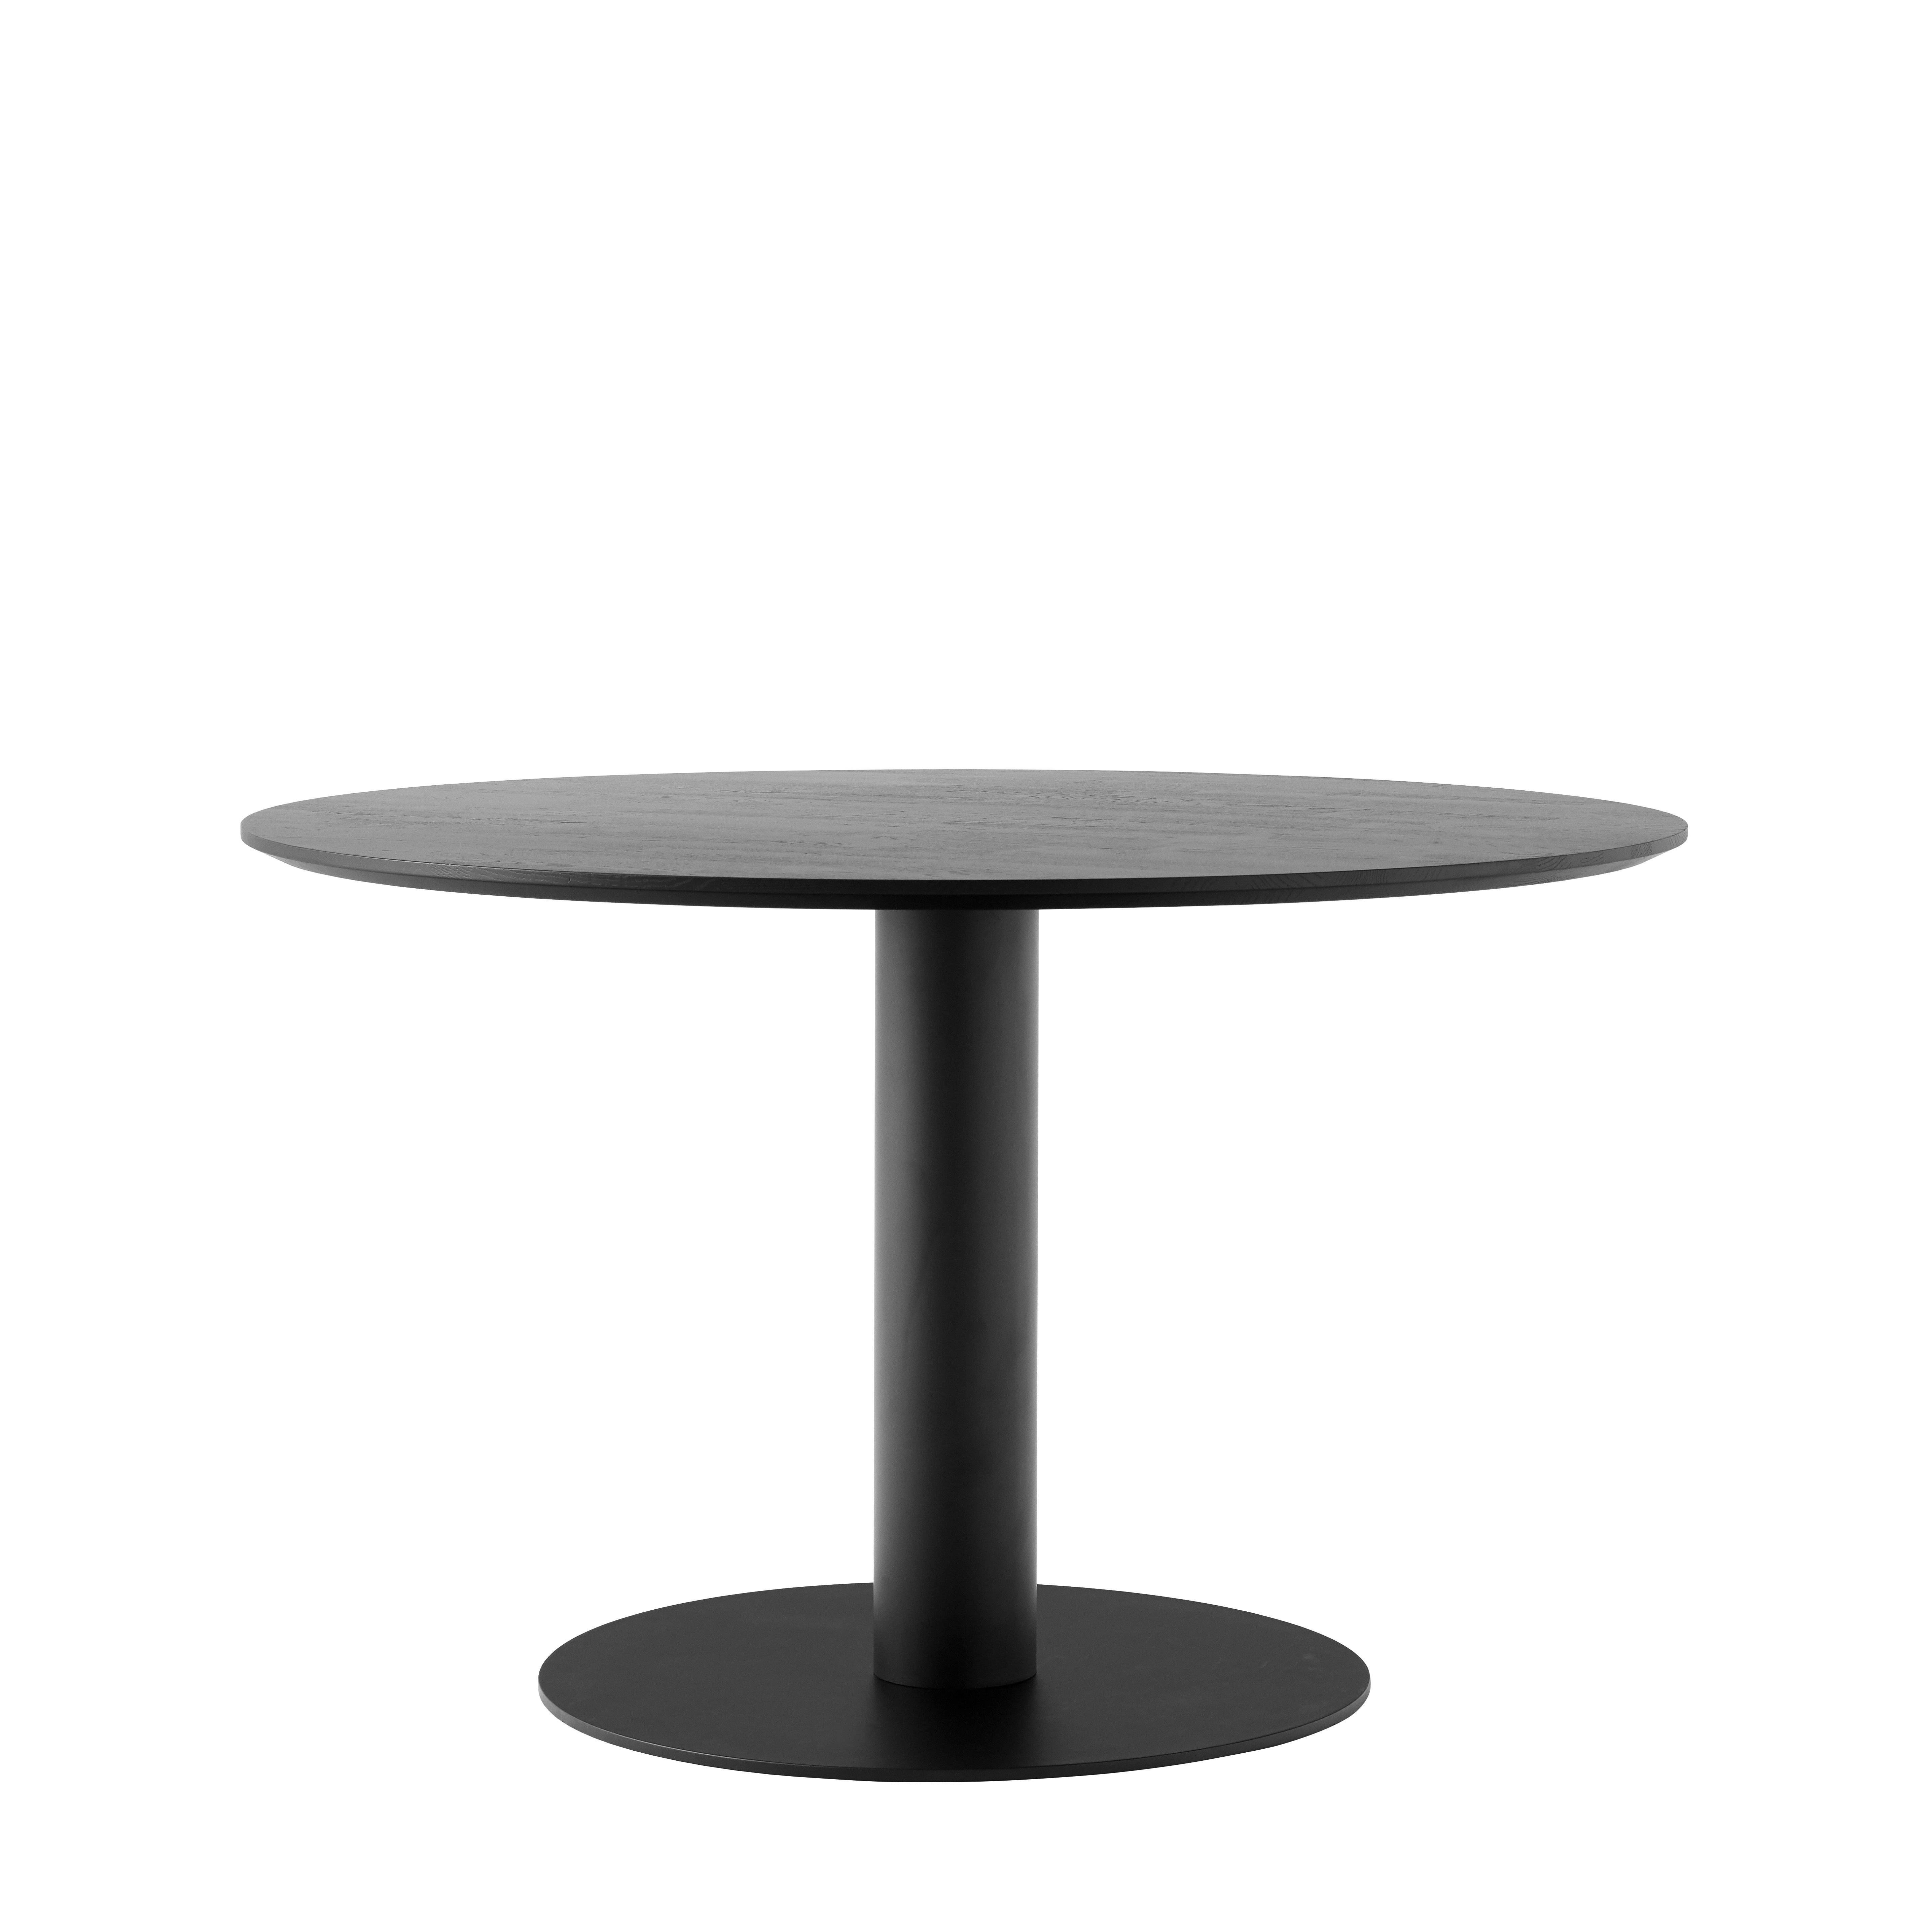 Furniture - Dining Tables - In Between SK12 Round table - / Central leg - Ø 120 - Oak by &tradition - Black stained oak / Black leg - Metal, Tinted oak wood